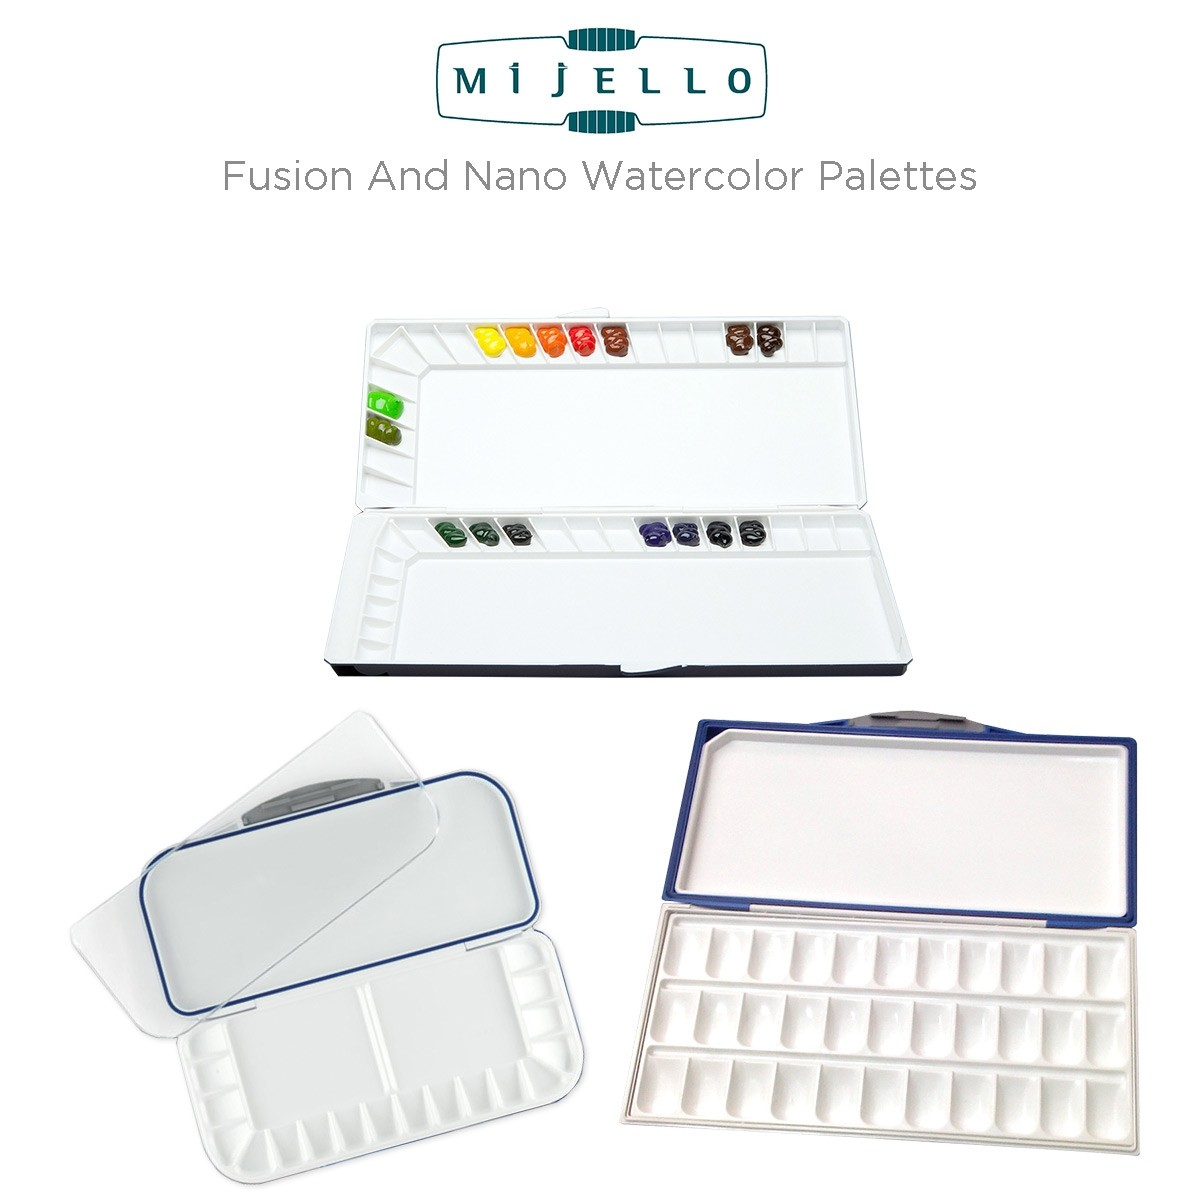 Mijello Fusion and Nano Watercolor Palettes